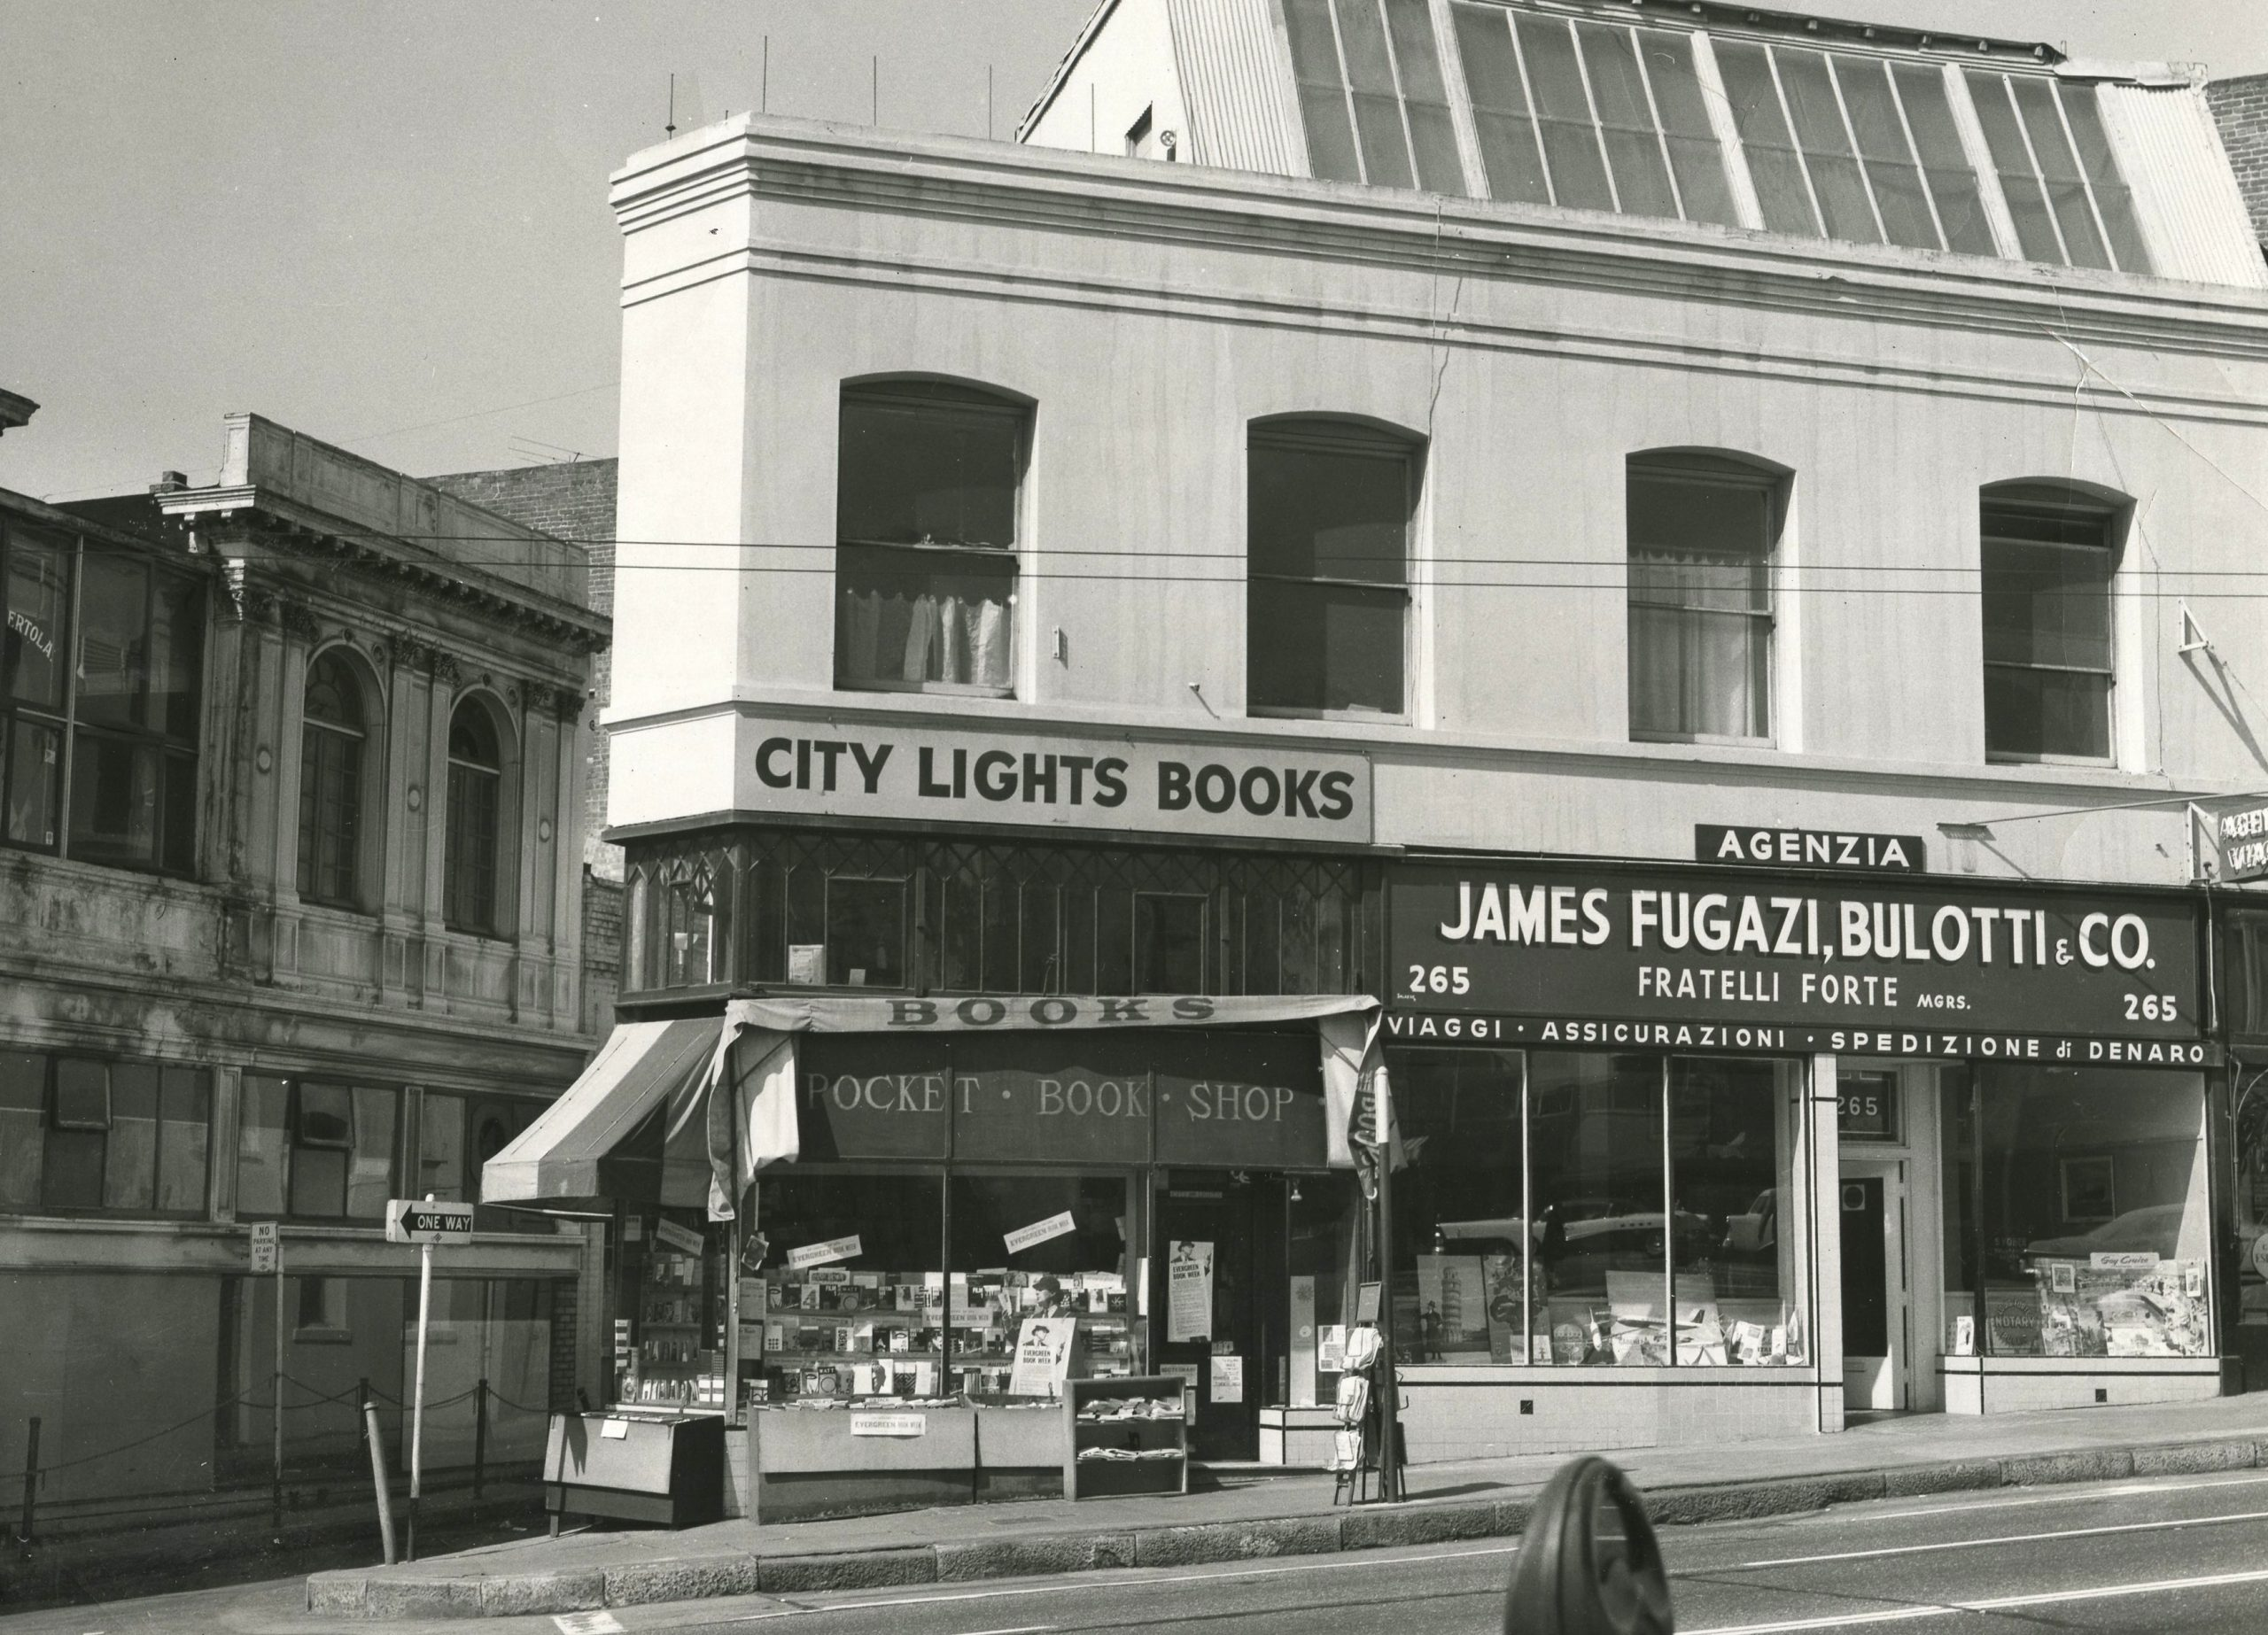 Triangle City Lights storefront as captured from across the street, circa 1950